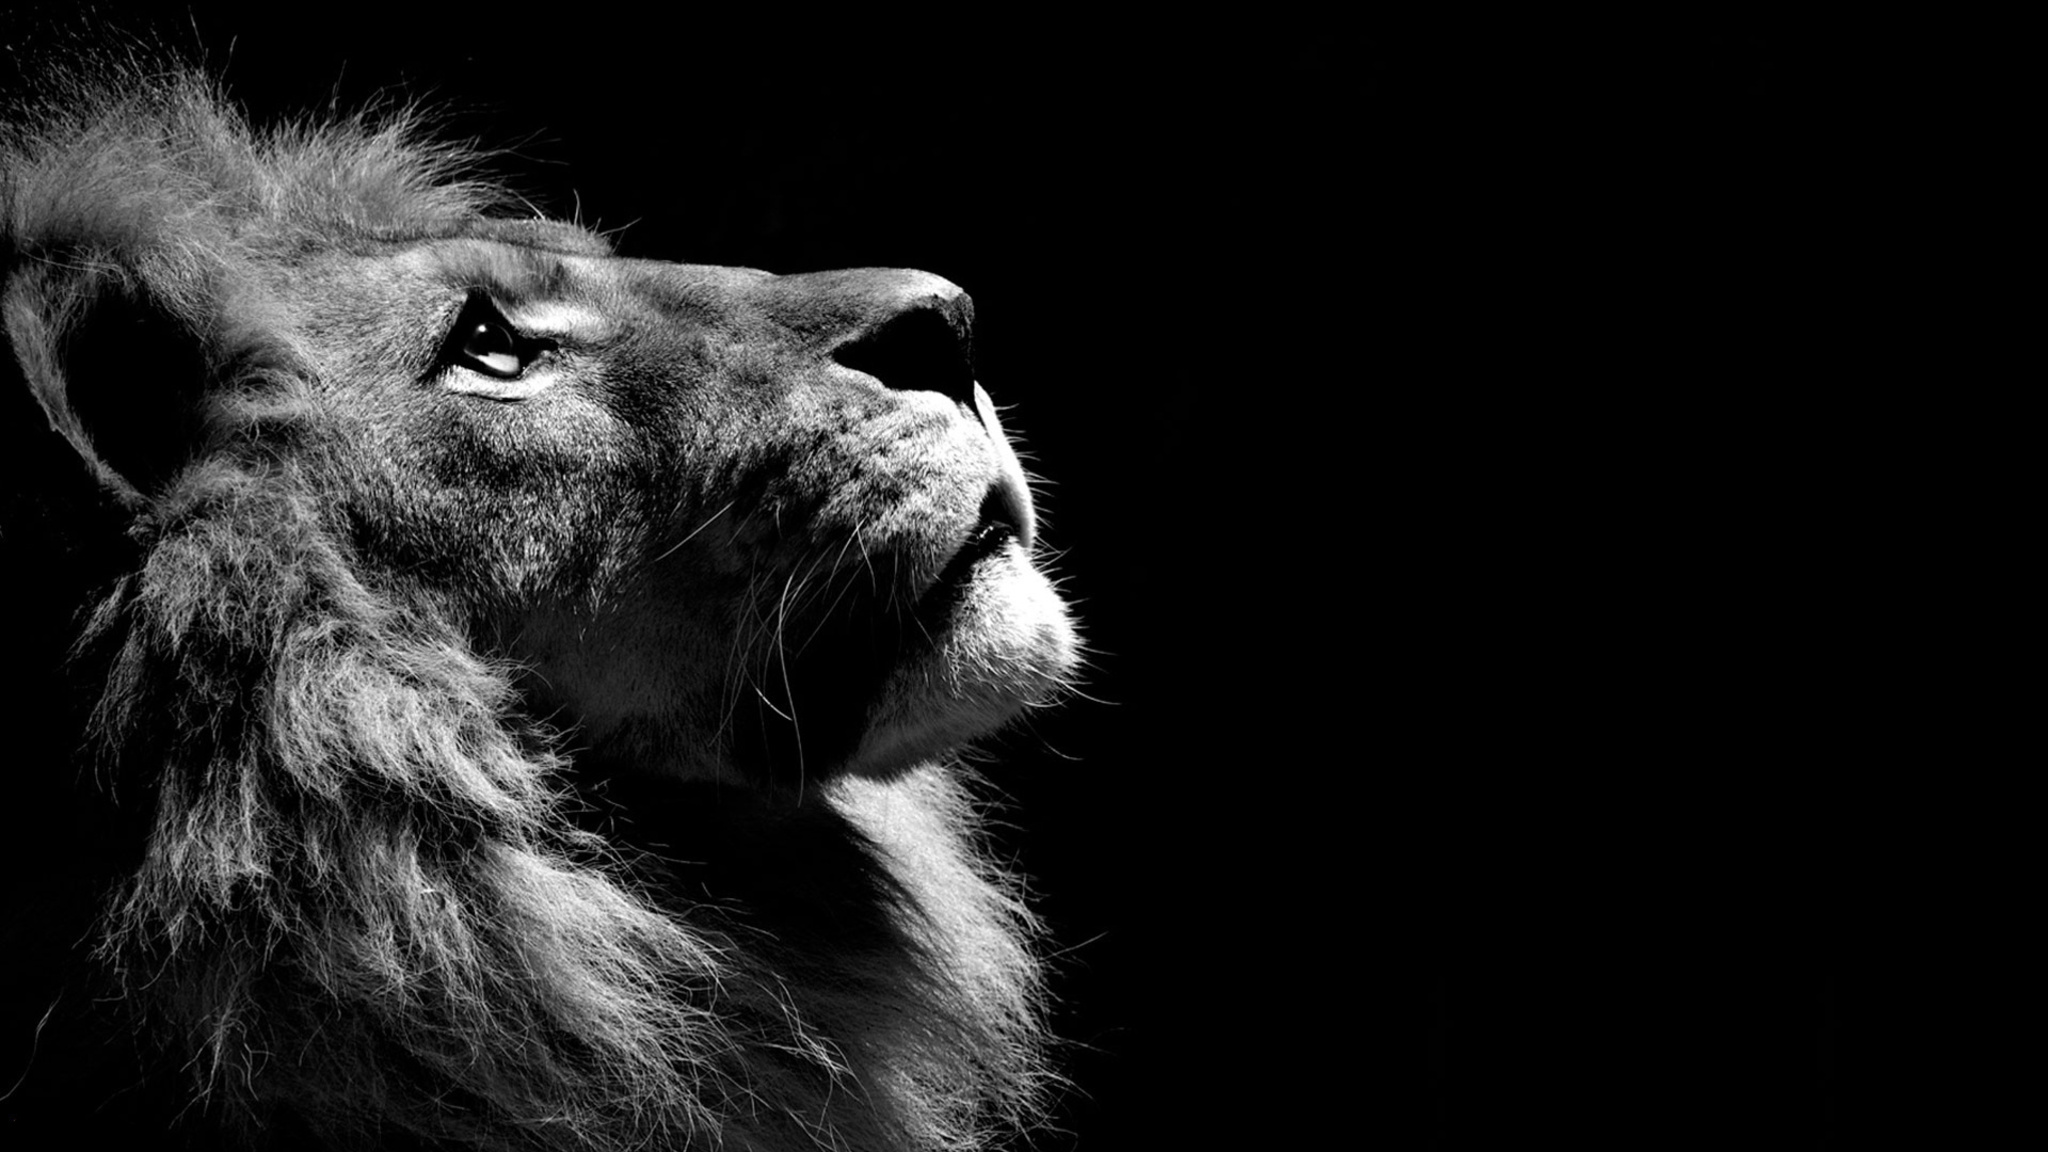 2048x1152 lion black and white 2048x1152 resolution hd 4k wallpapers